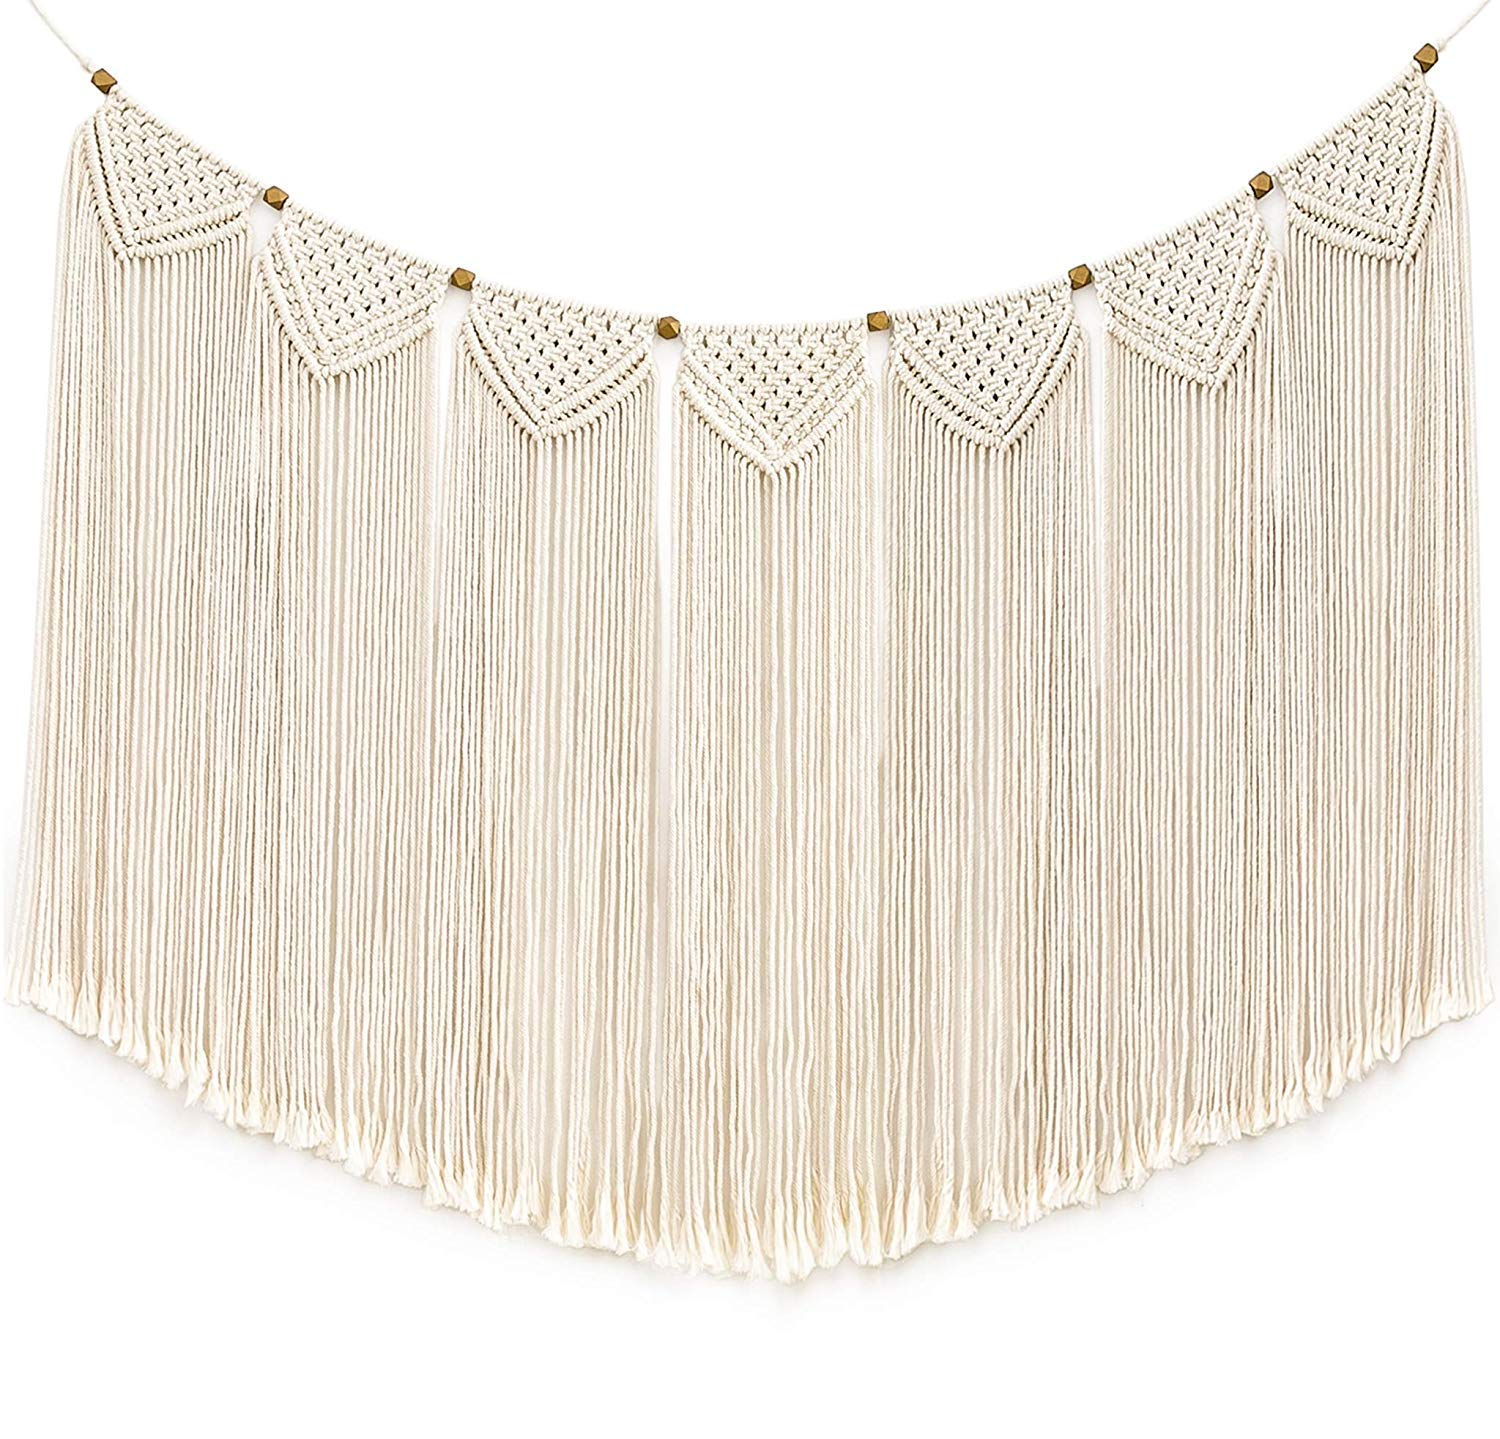 Mkono Macrame Wall Hanging Curtain Fringe Garland Banner Bohemian Wall Decor Woven Home Decoration for Apartment Bedroom Living Room Gallery Baby Nursery 47'L X 28'W